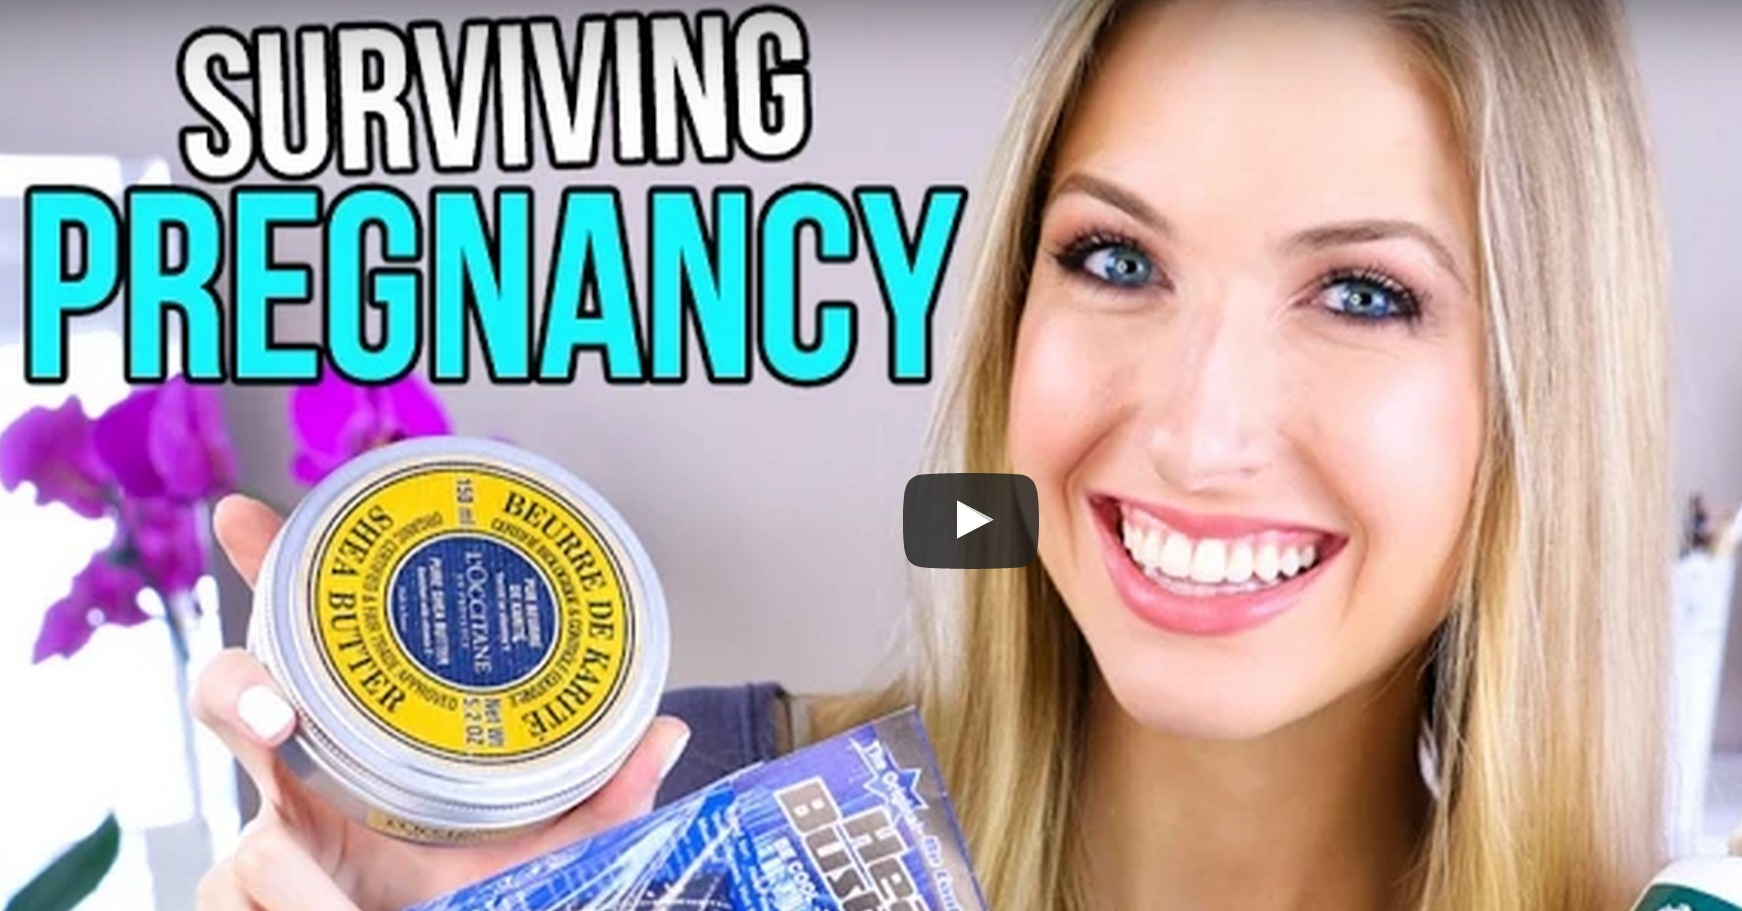 Surviving Pregnancy via YouTuber RachhLovesLife